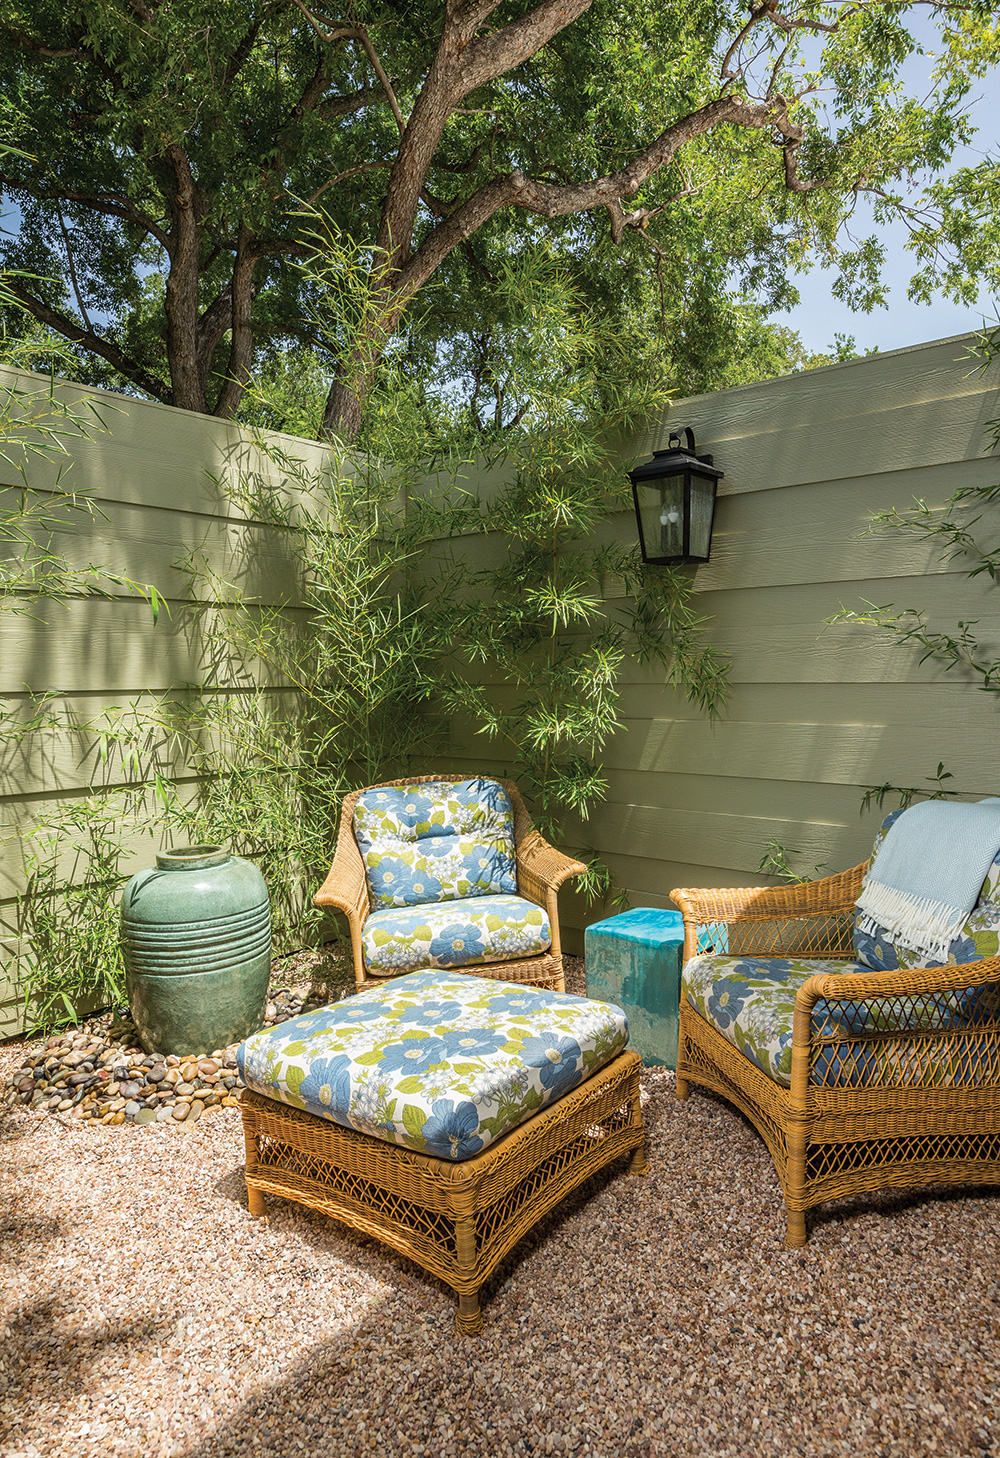 The little private patio off of my room was so quaint and relaxing.